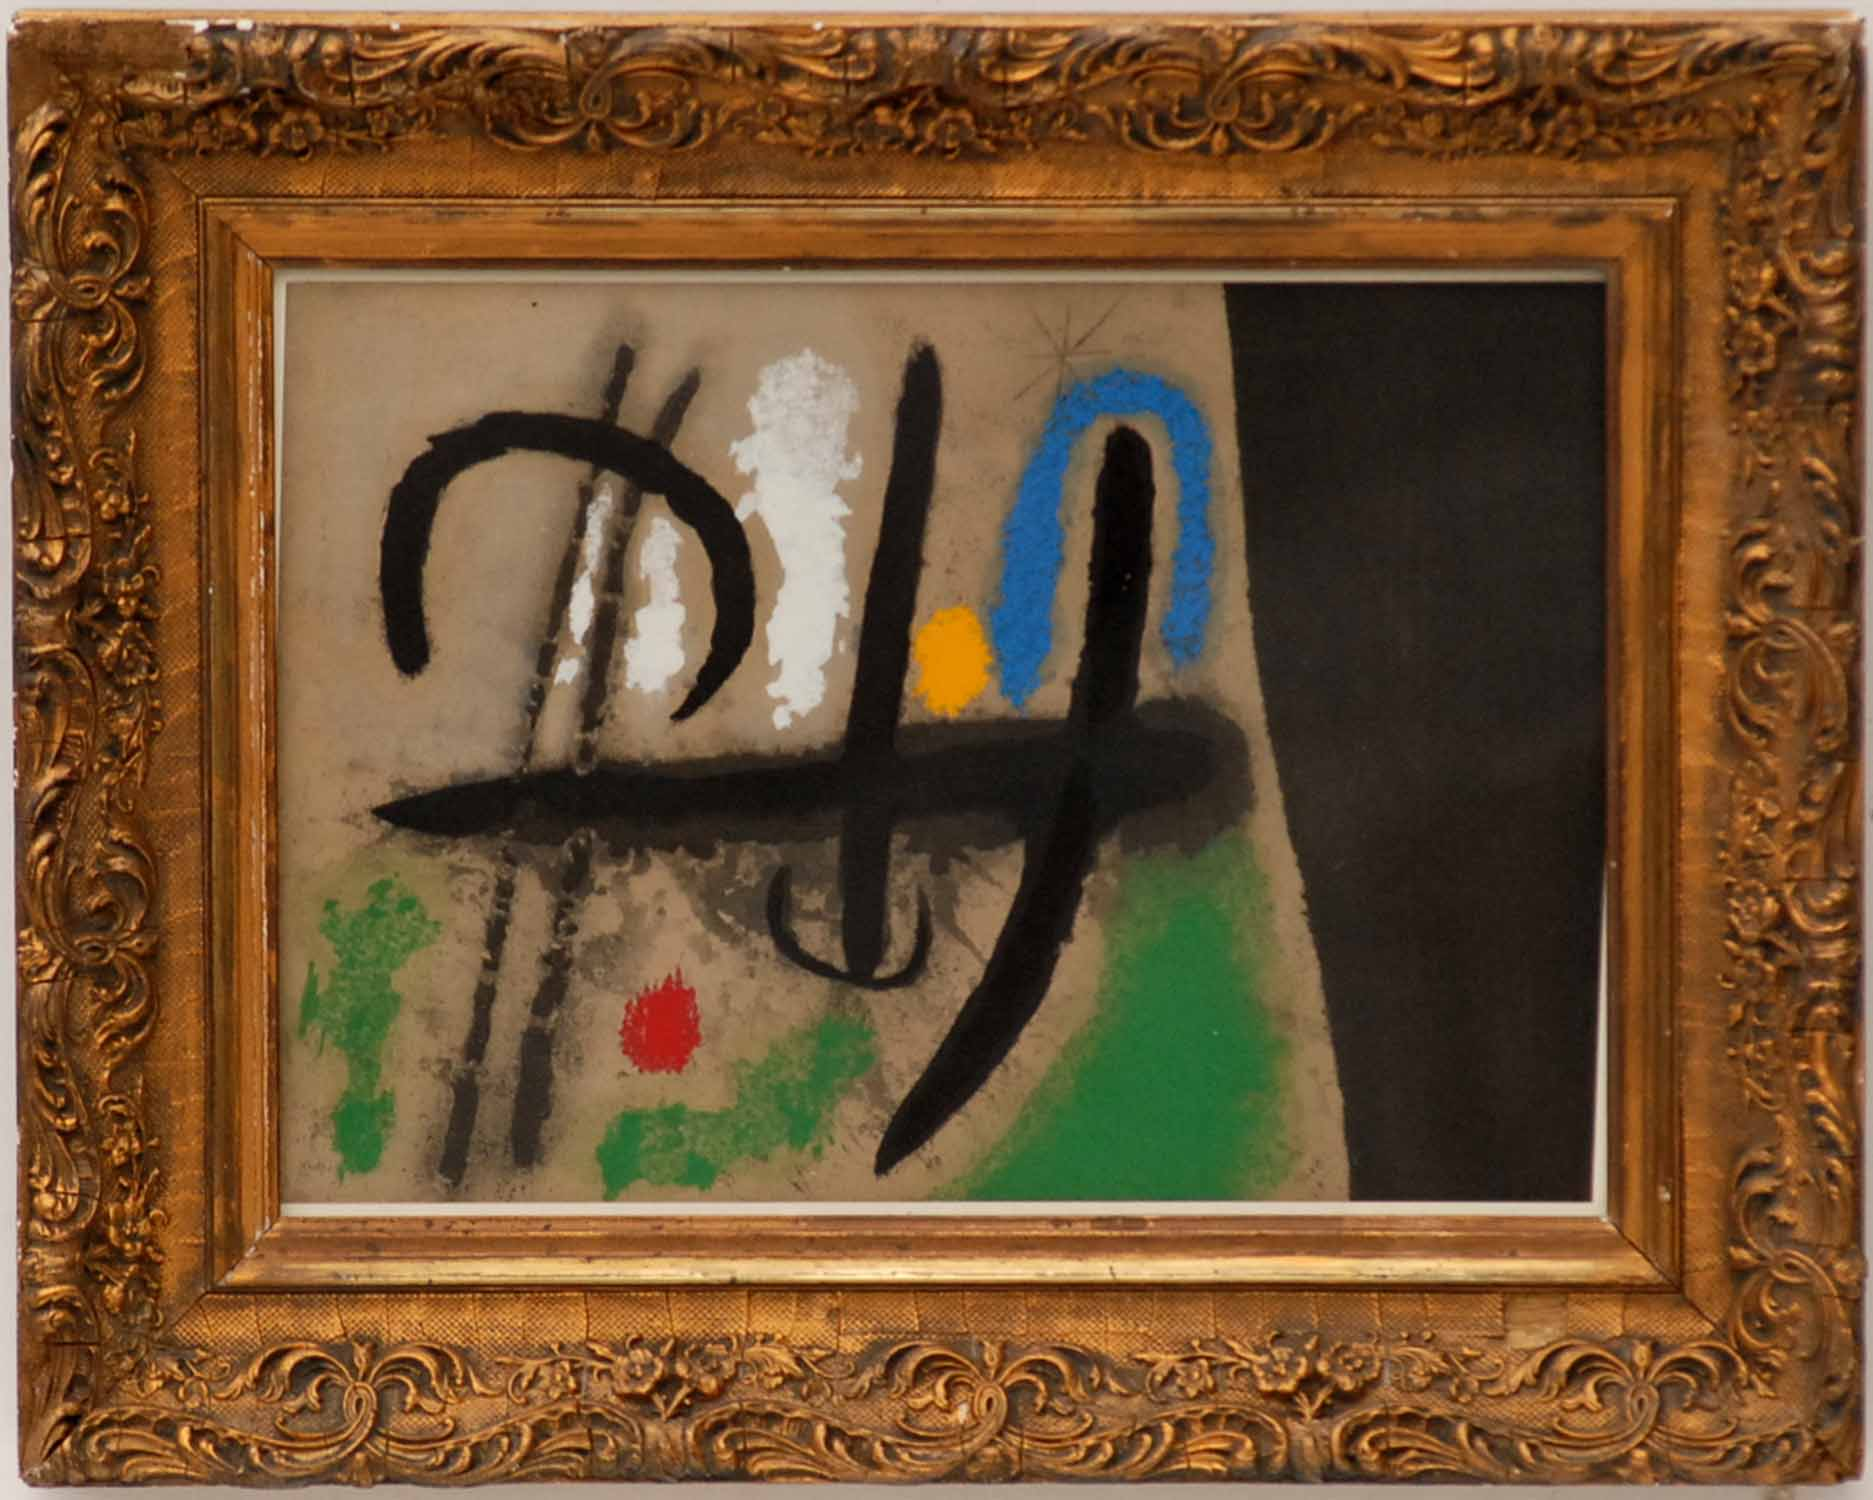 Lot 103 - JOAN MIRO 'Oiseau dans un paysage', hand coloured pochoir, printed by Daniel Jacomet,